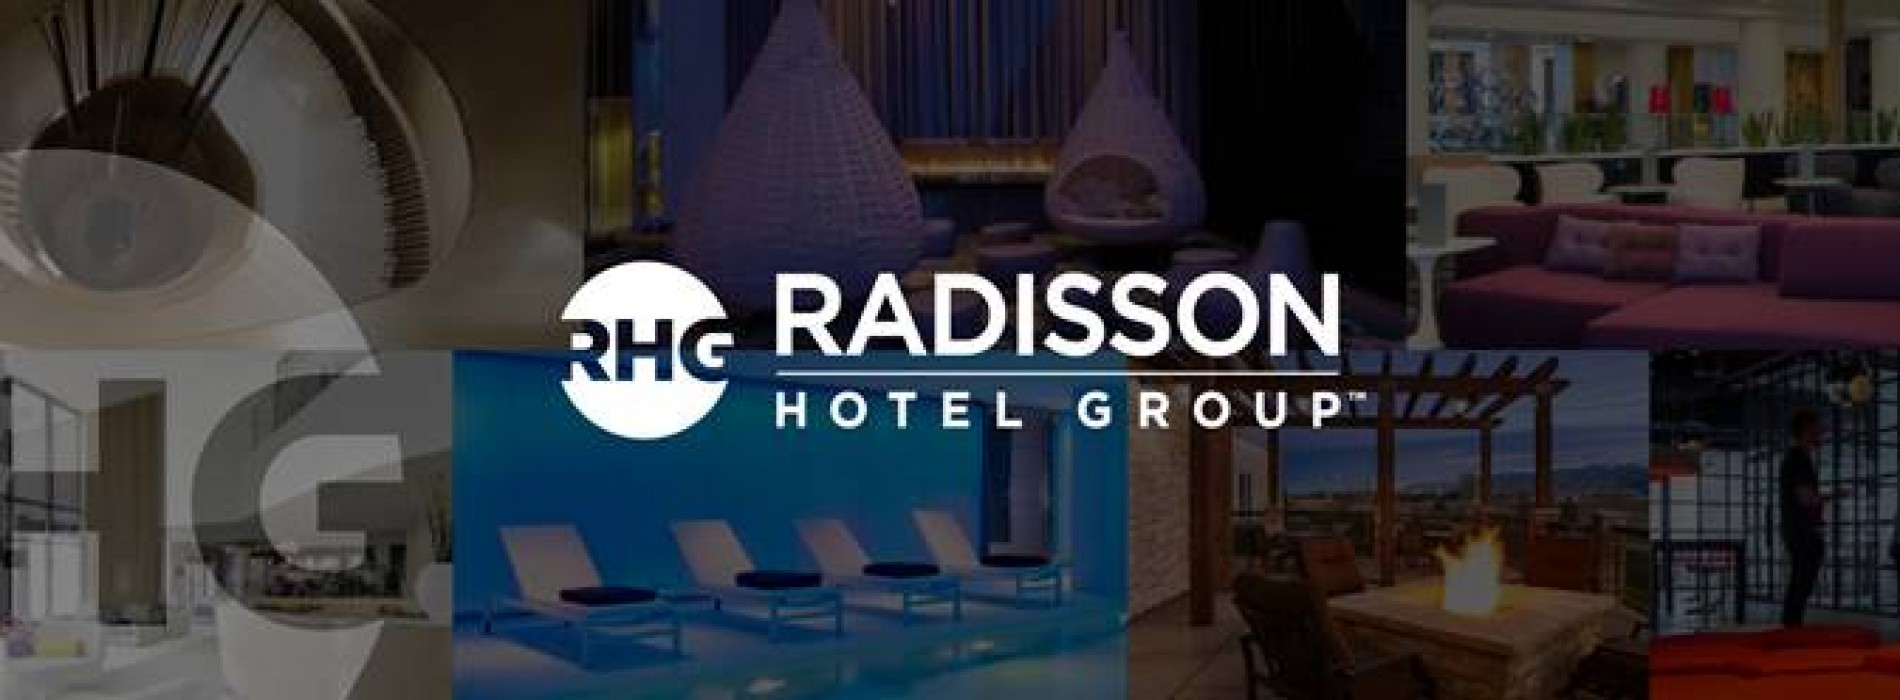 Radisson Hotel Group aims for 200 hotels in South Asia by 2022